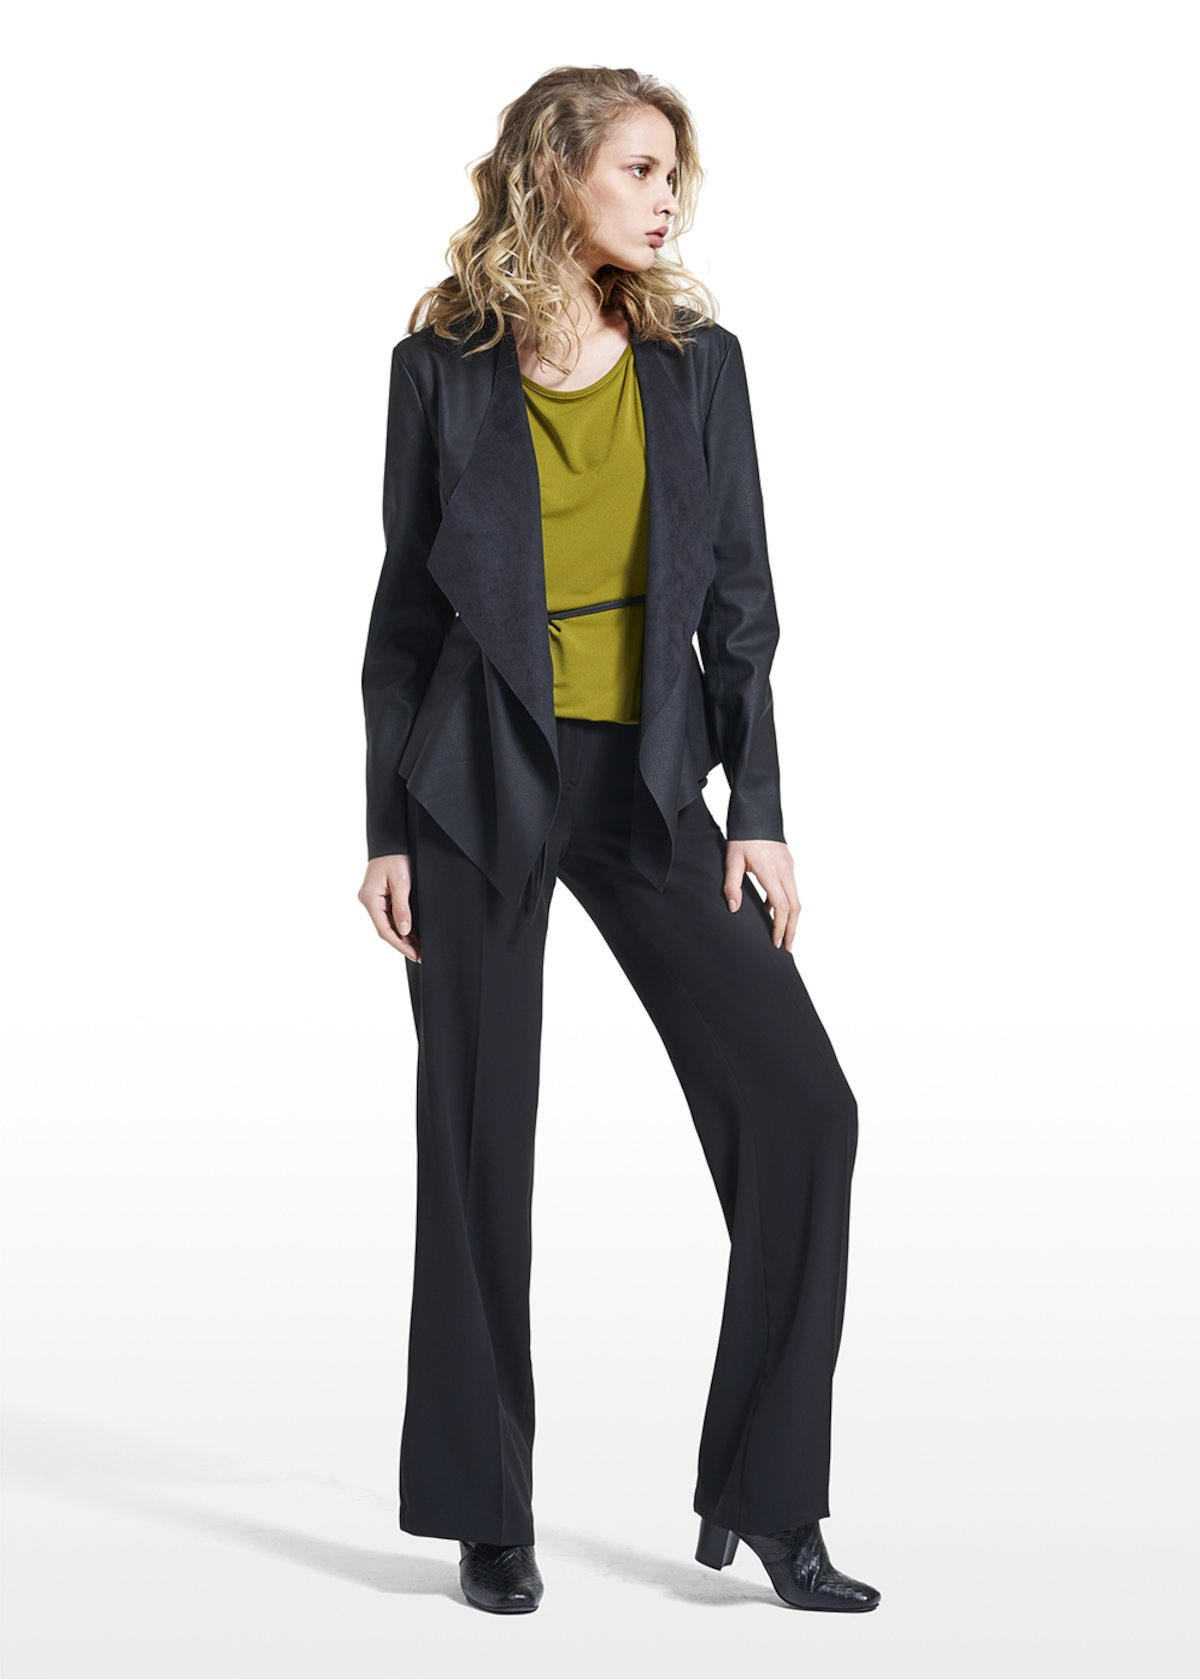 Jacket in faux leather Claudy with bow at the centre - Black - Woman - Category image